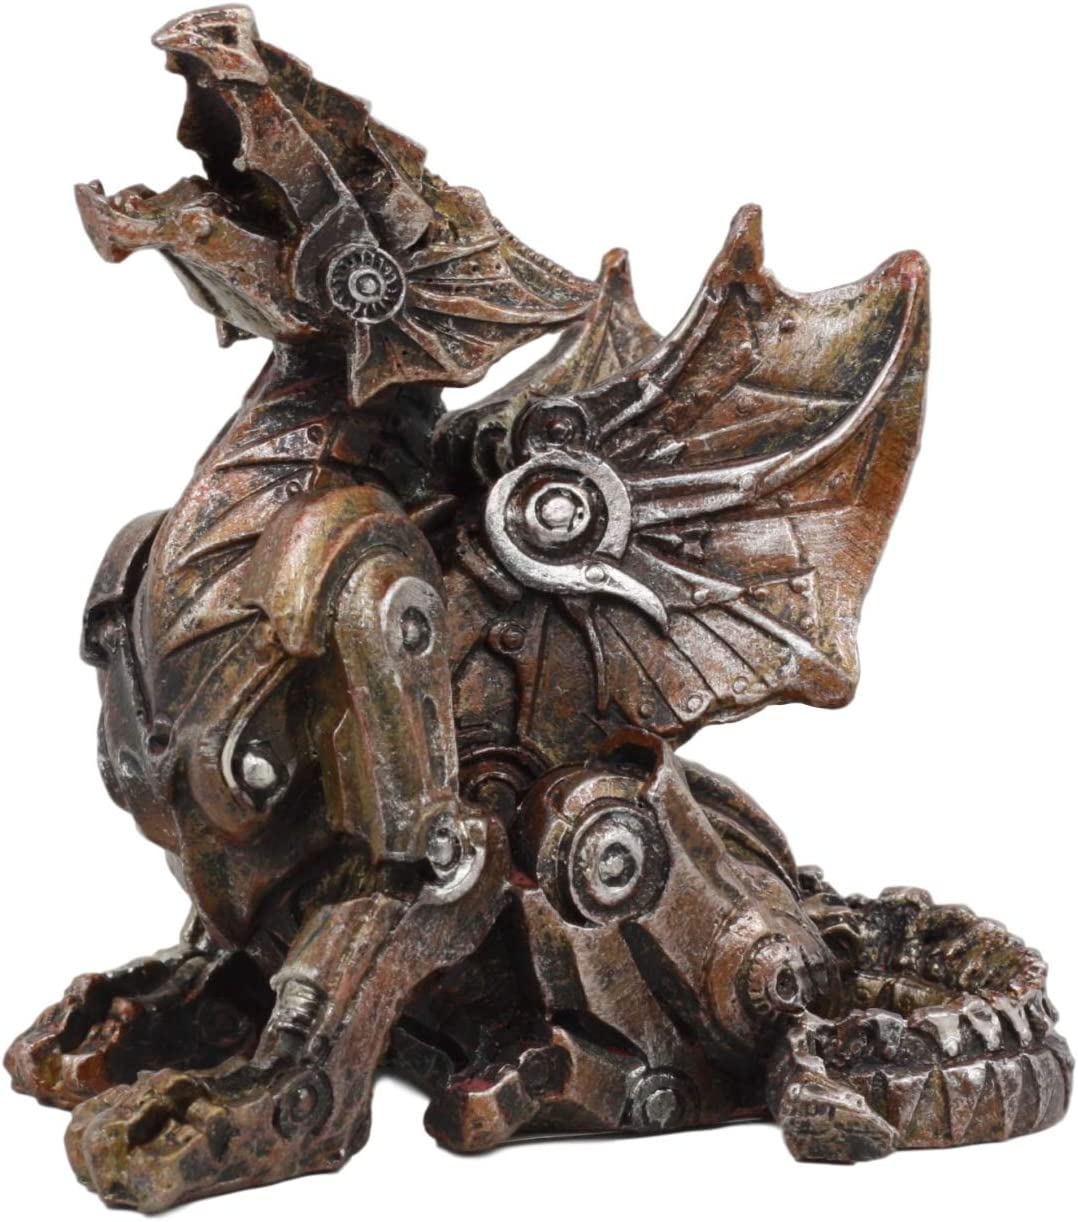 """Ebros Small Roaring Cyborg Steampunk Dragon Figurine 3.25""""High Victorian Sci Fi Decor Statue As Mythical Fantasy Collectible For Home And Office Desktop Shelf Paperweight Accessory"""